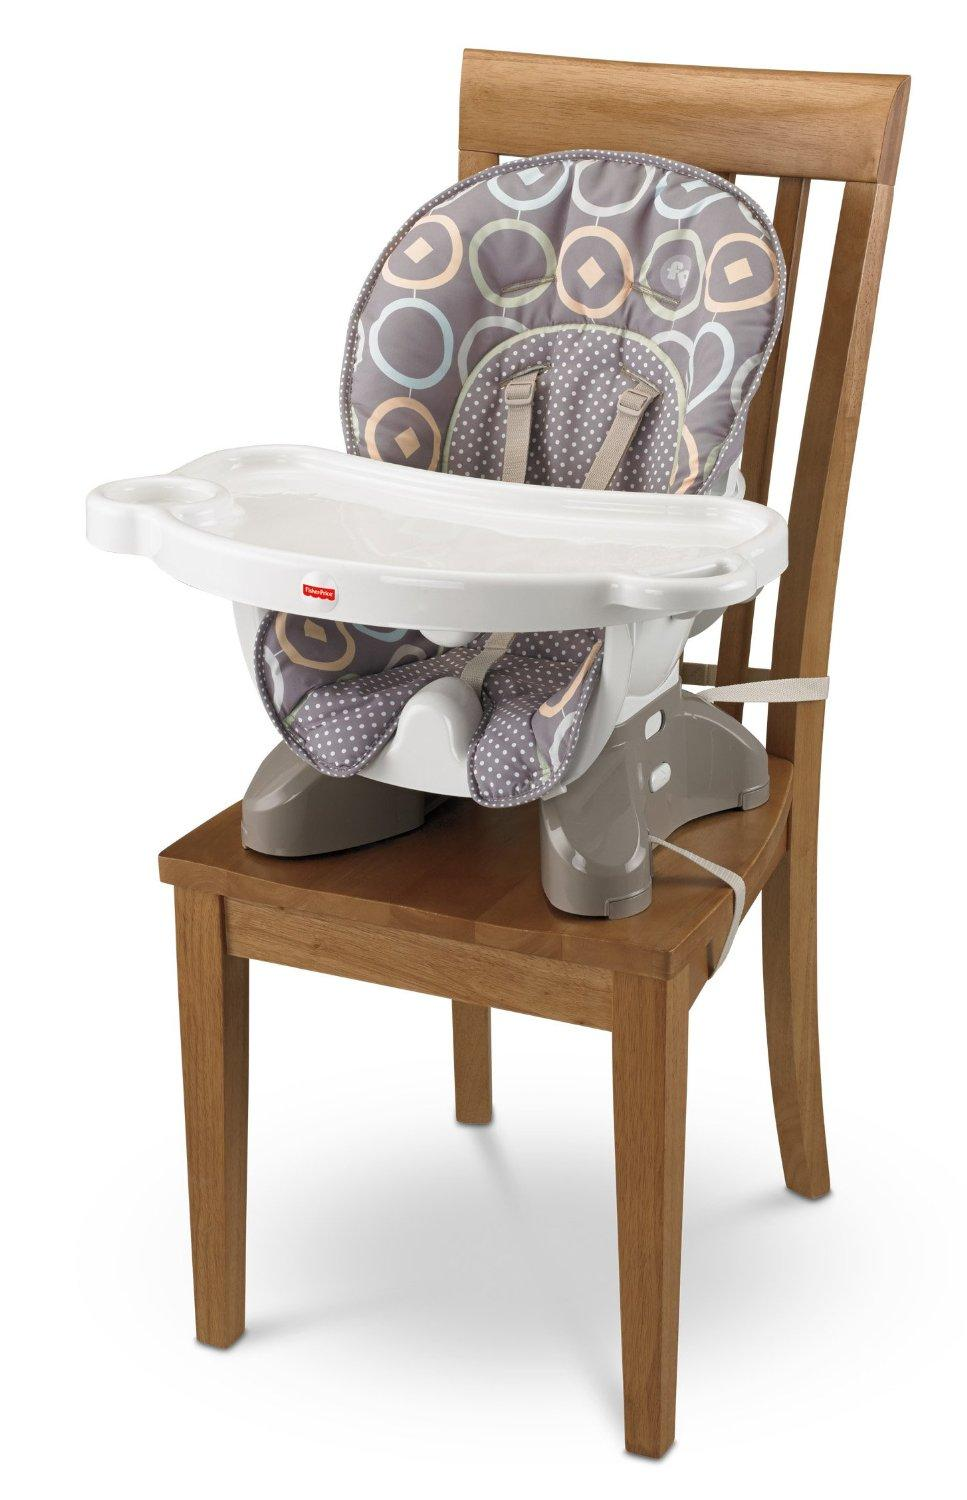 Fisher price spacesaver high chair luminosity baby - High chair for small spaces image ...